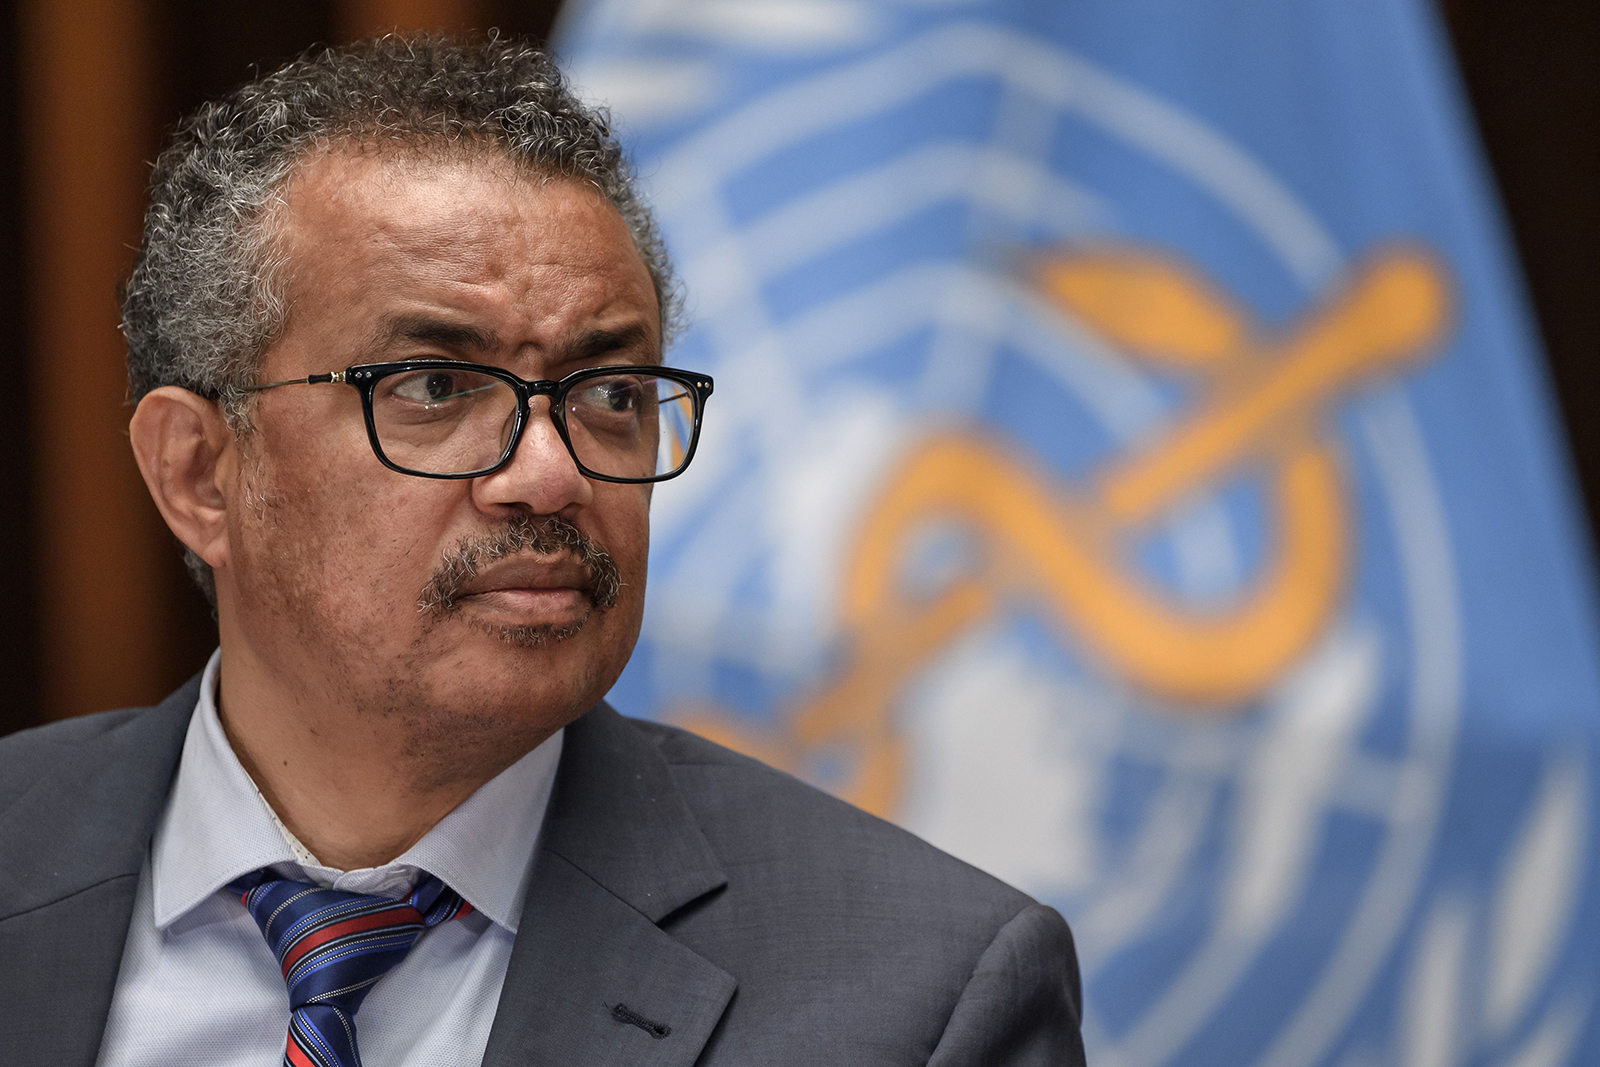 World Health Organization Director-General Tedros Adhanom Ghebreyesus attends a press conference on July 3, at the WHO headquarters in Geneva.